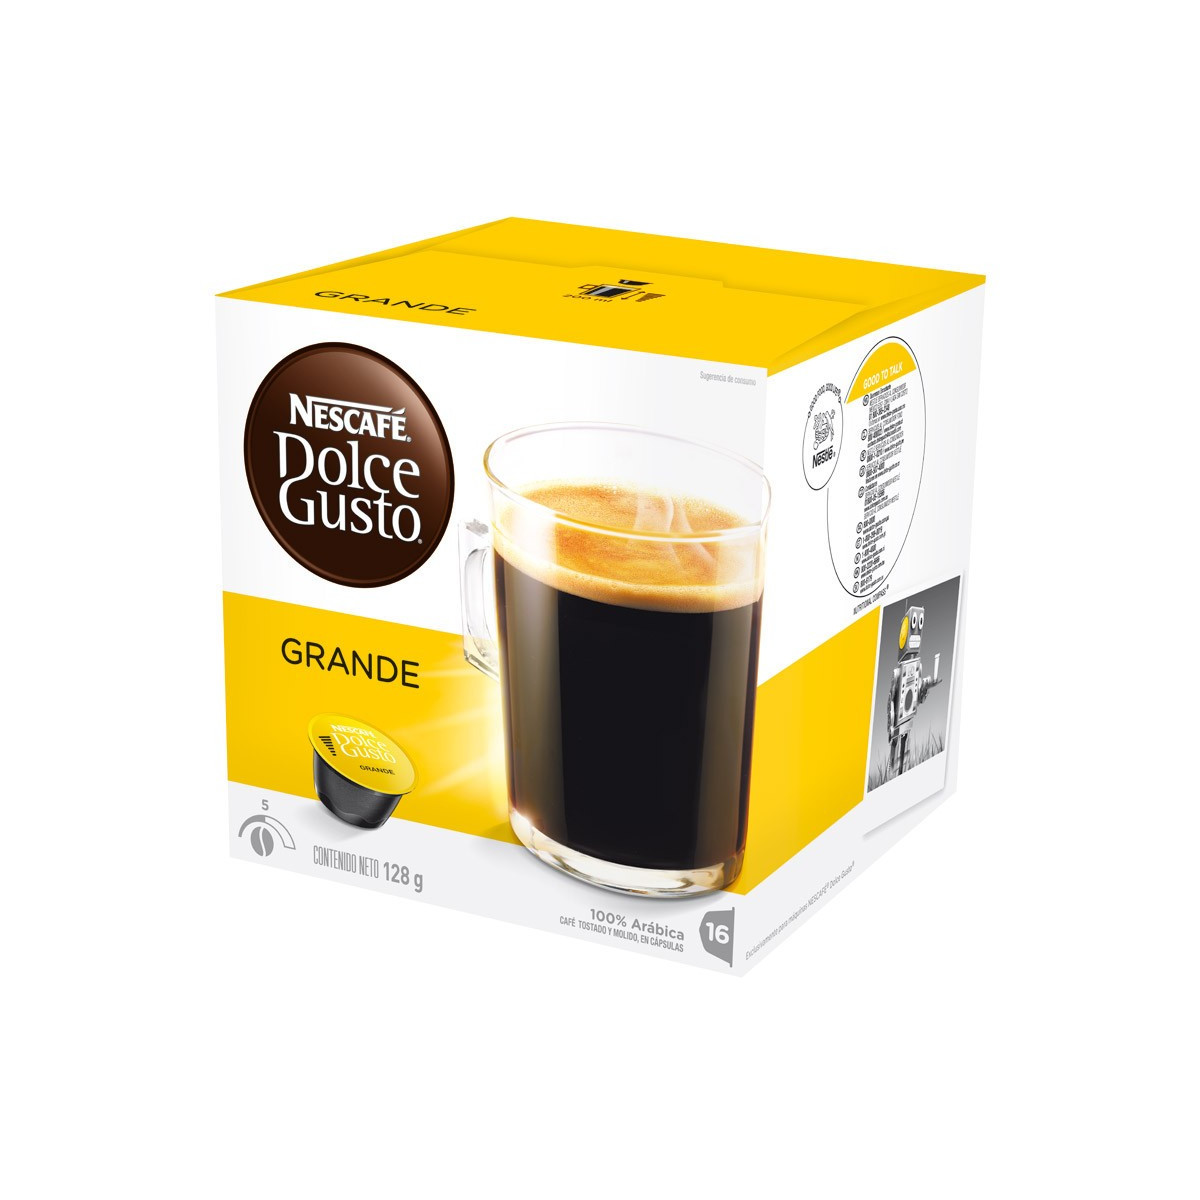 capsules dolce gusto grande 16 capsules. Black Bedroom Furniture Sets. Home Design Ideas